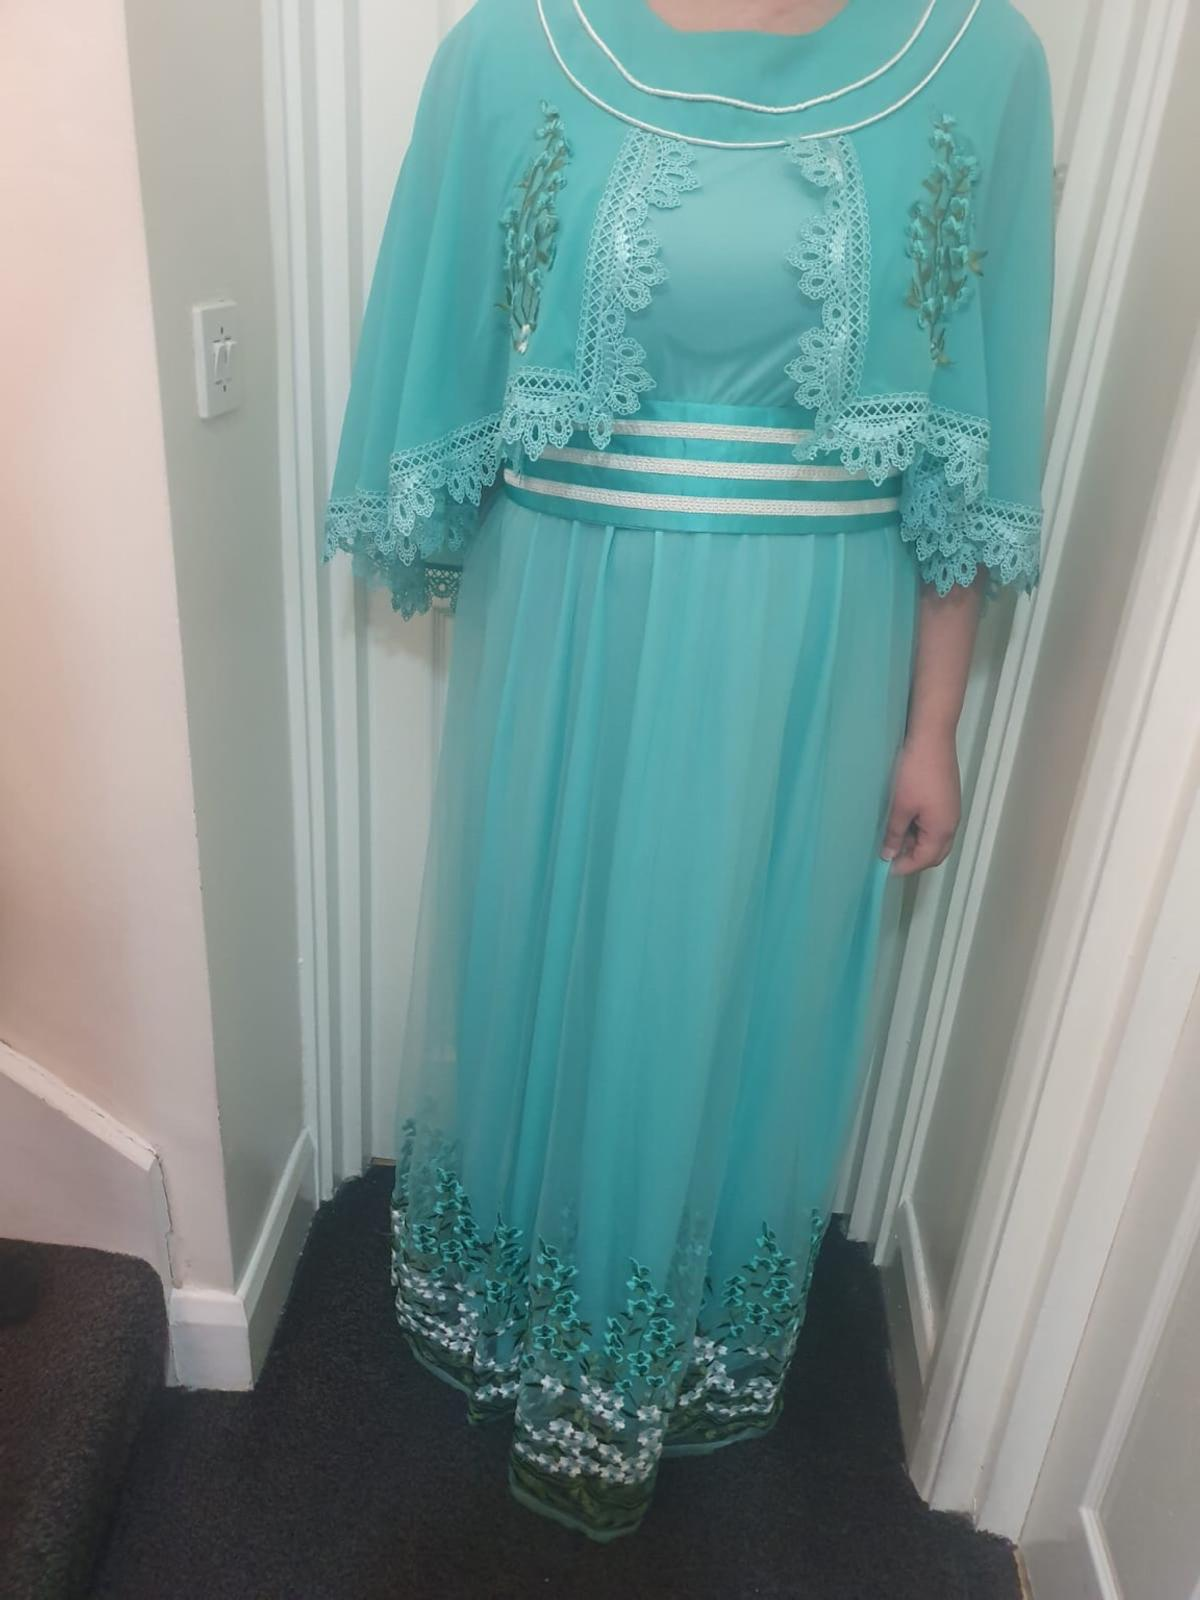 Arab dress New Never been worn (only worn to take picture) Originally bought for £100 from Dubai